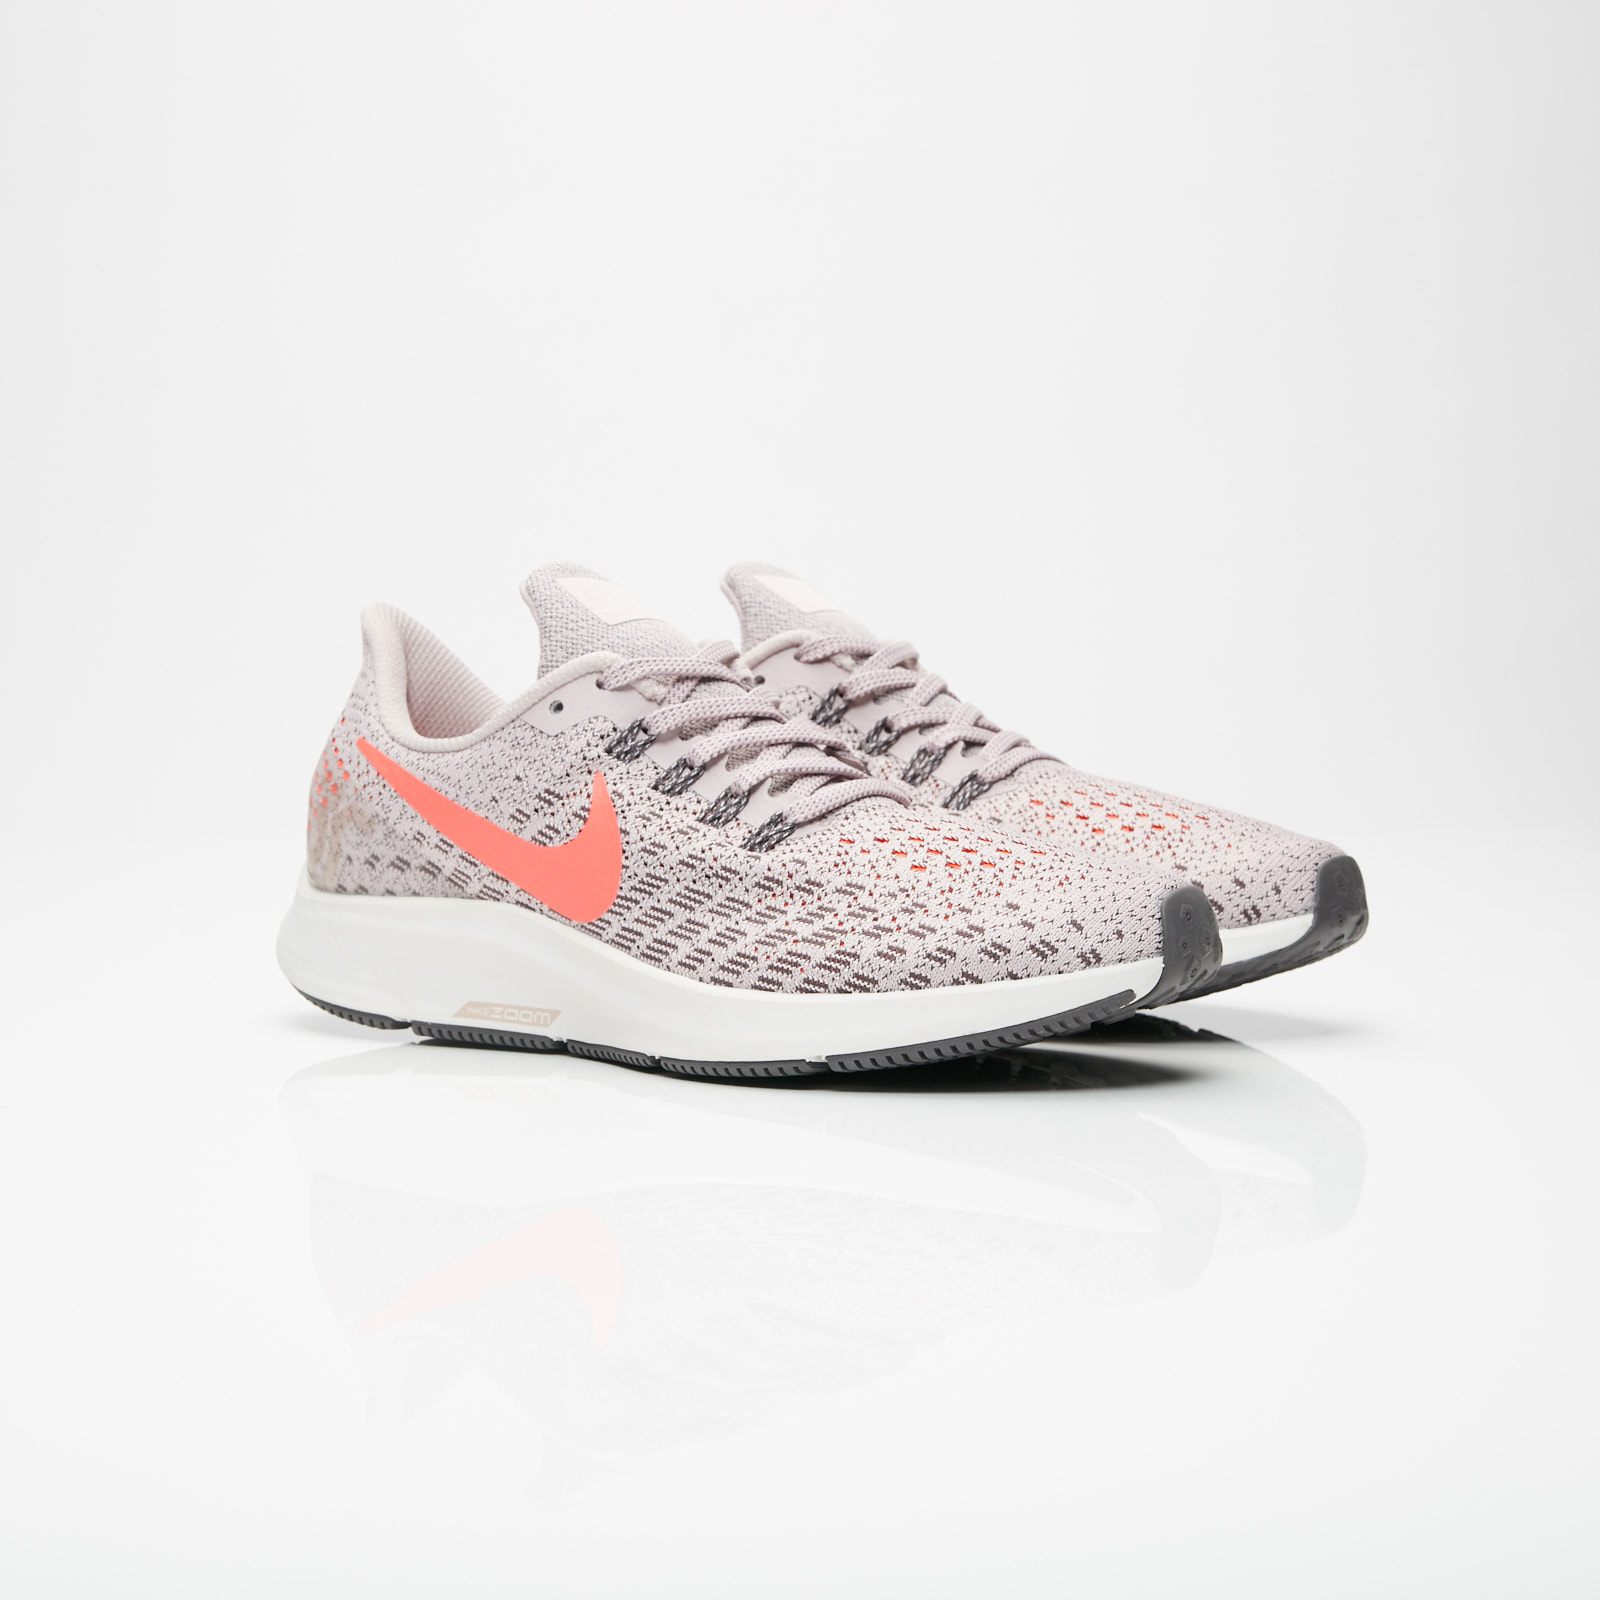 huge selection of 8b169 bbb6f Nike Air Zoom Pegasus 35 - 942855-602 - Sneakersnstuff ...